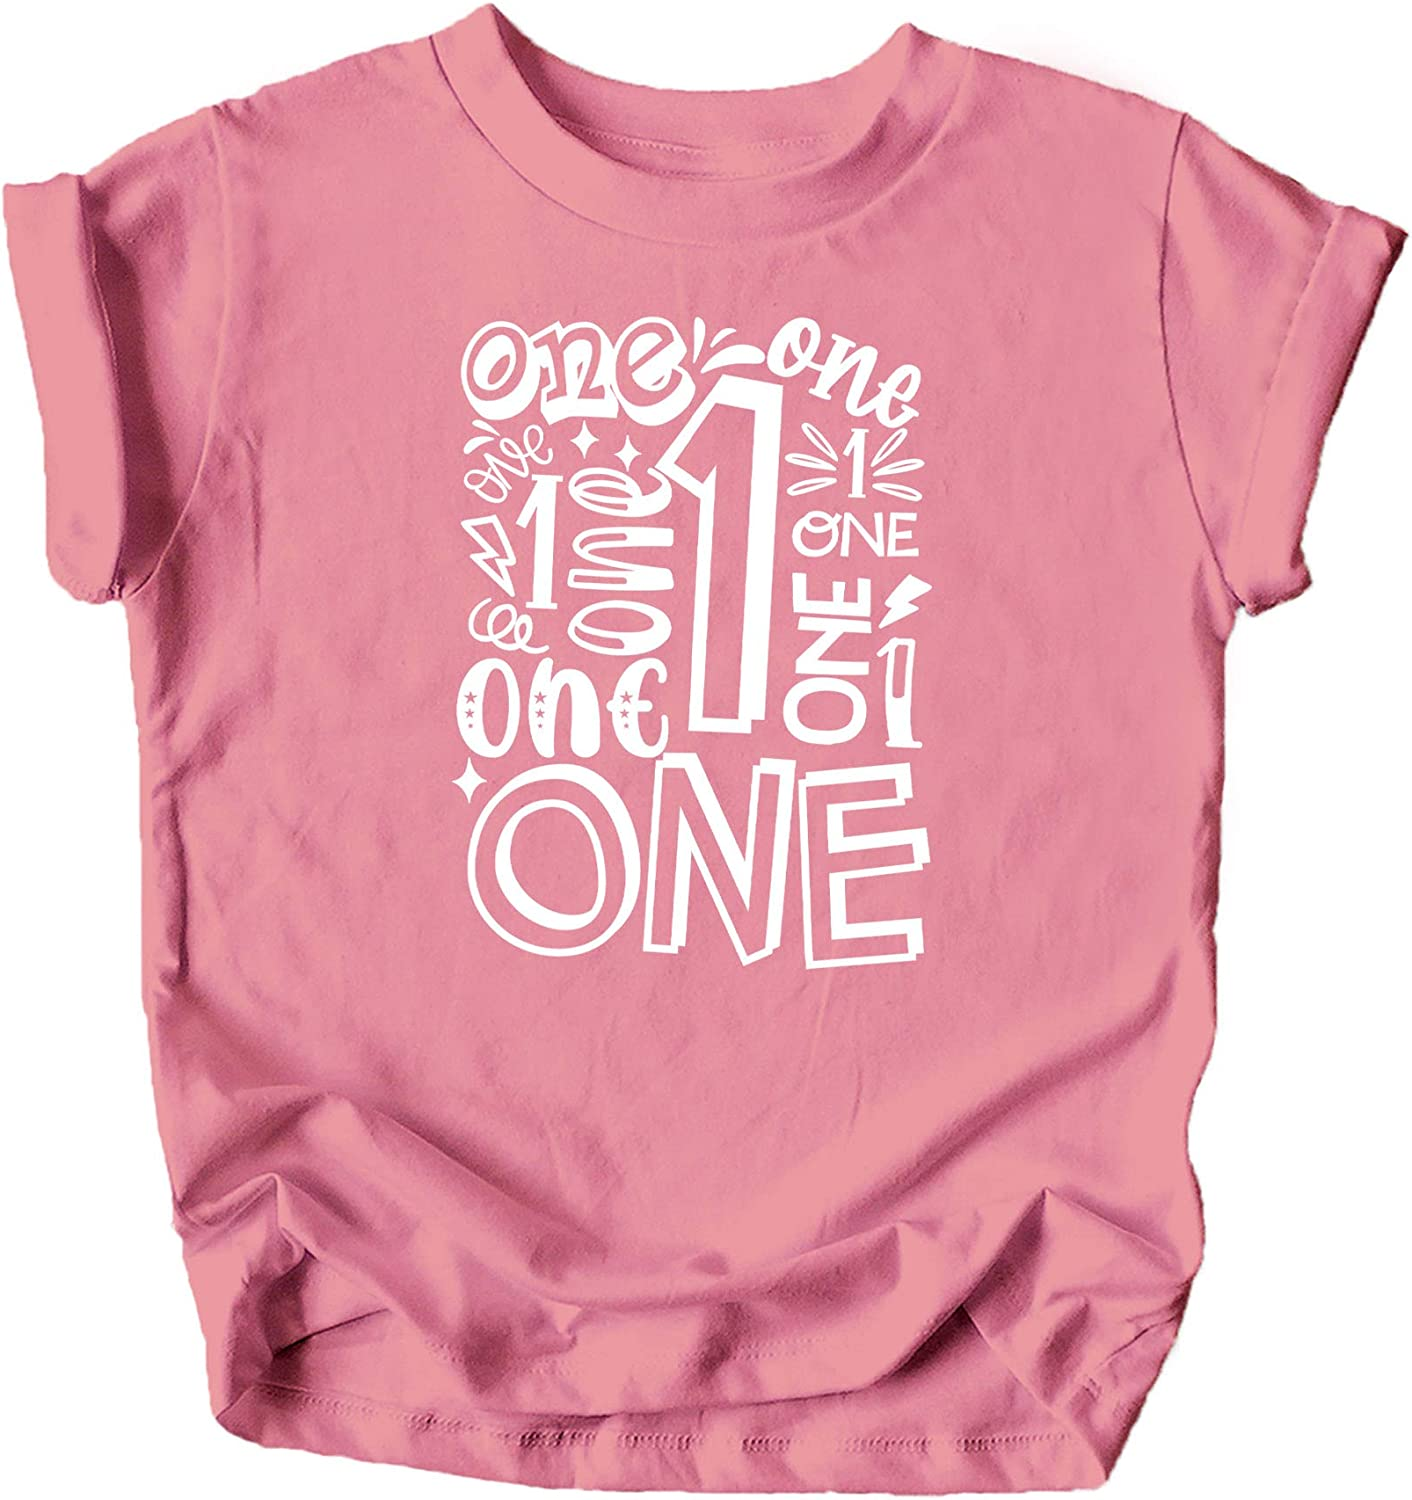 Olive Loves Apple Charming 1st Birthday Terms T-Shirts and Raglans for Baby Girls and Boys First Birthday Outfit